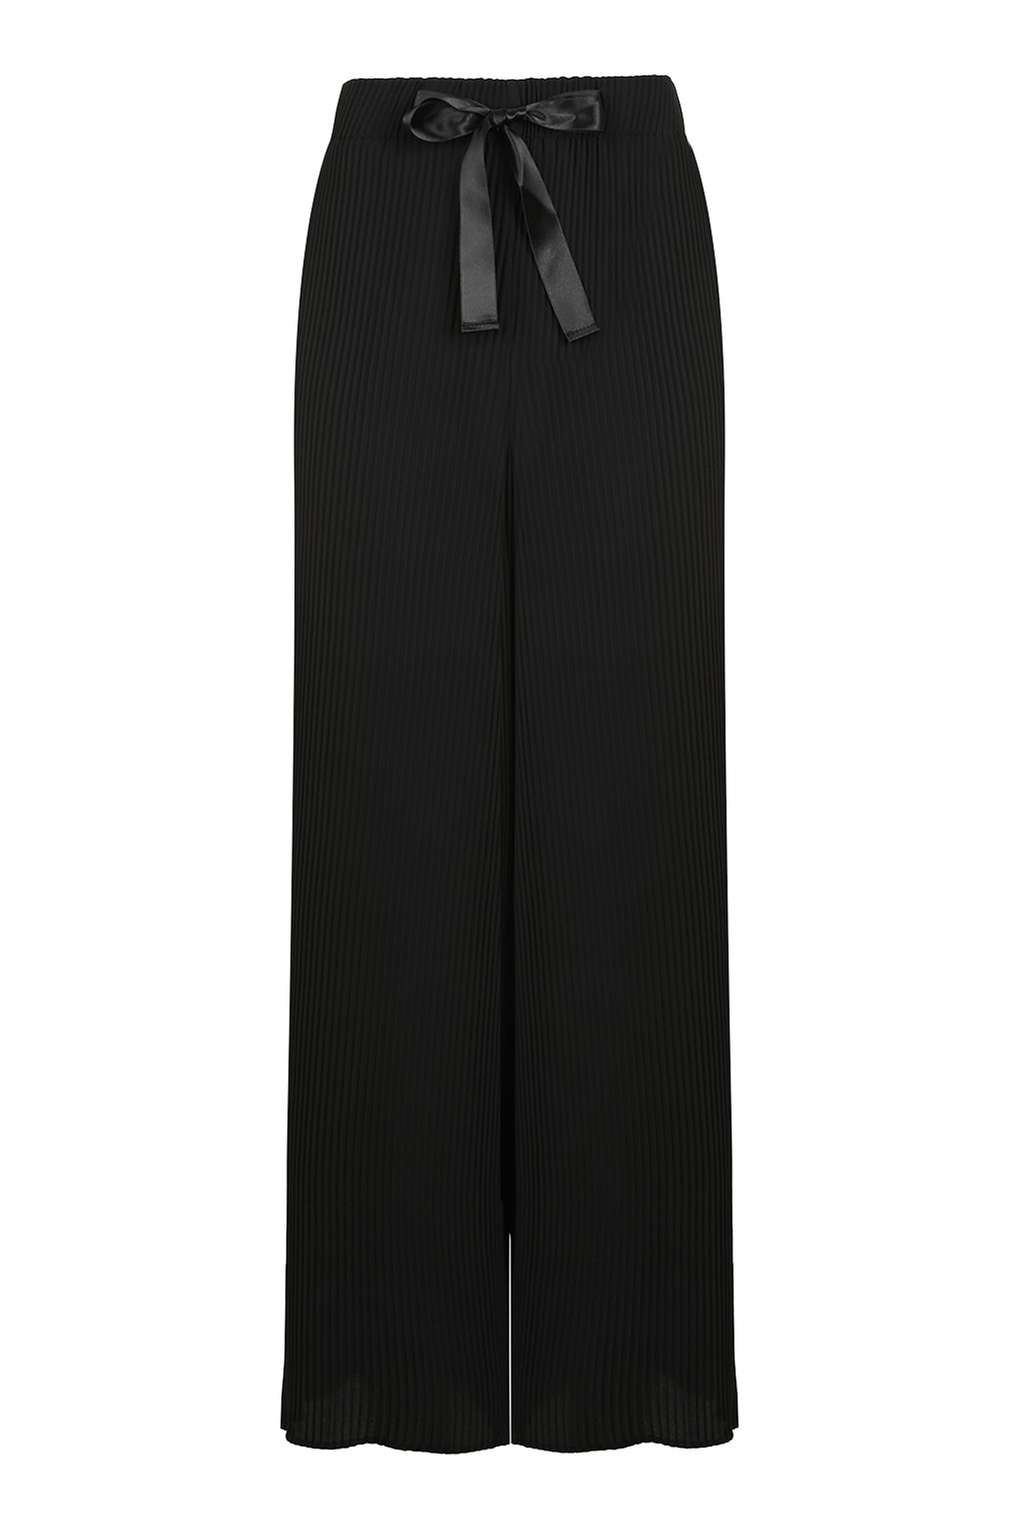 topshop ribbon drawstring plisse trousers in black lyst. Black Bedroom Furniture Sets. Home Design Ideas